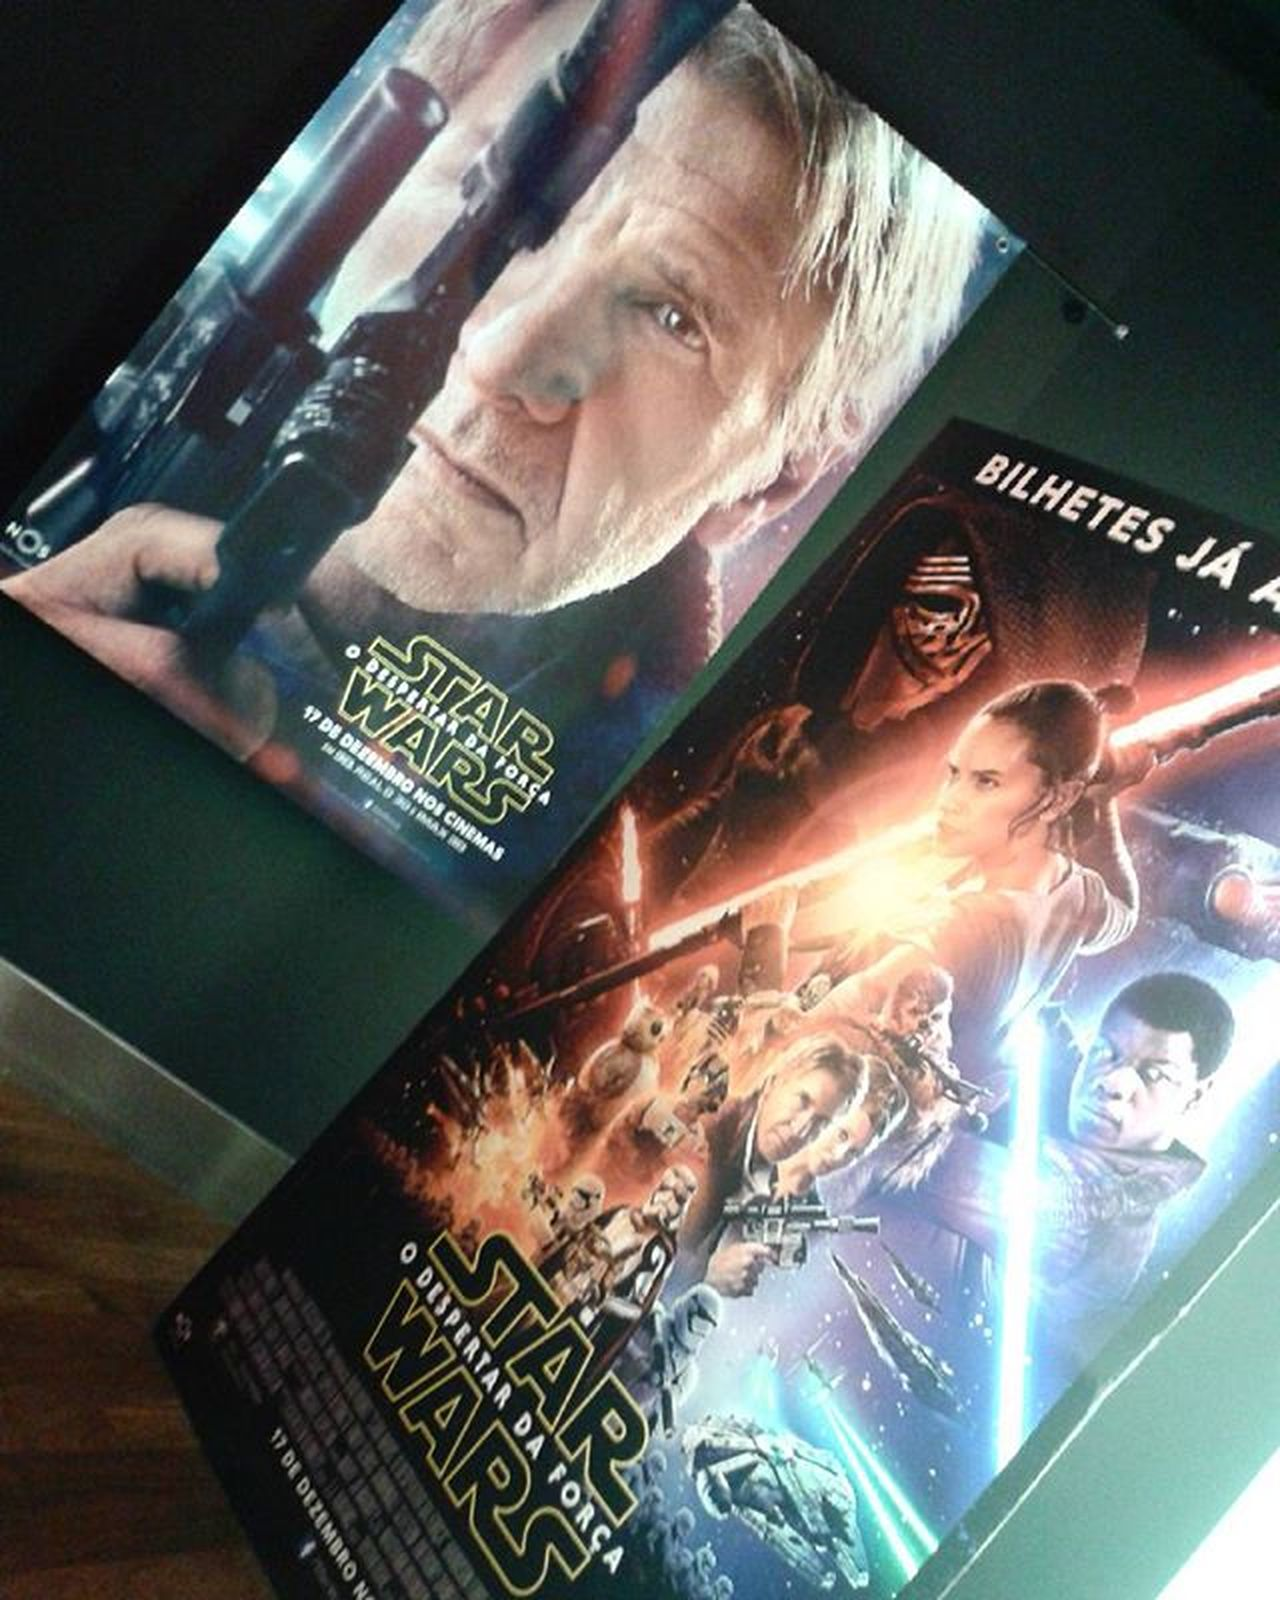 Done. Mission acomplished! Starwars Geek Cinema Movies Film Cinematography Movienews Georgelucas Igersportugal Ig_portugal A_meu_ver Instadaily Instagood Jornalinsta Imagemquefala Ciné Portugaldenorteasul Movieposter Disney Princessleia MayTheForceBeWithyou MayTheFourthBeWithYou